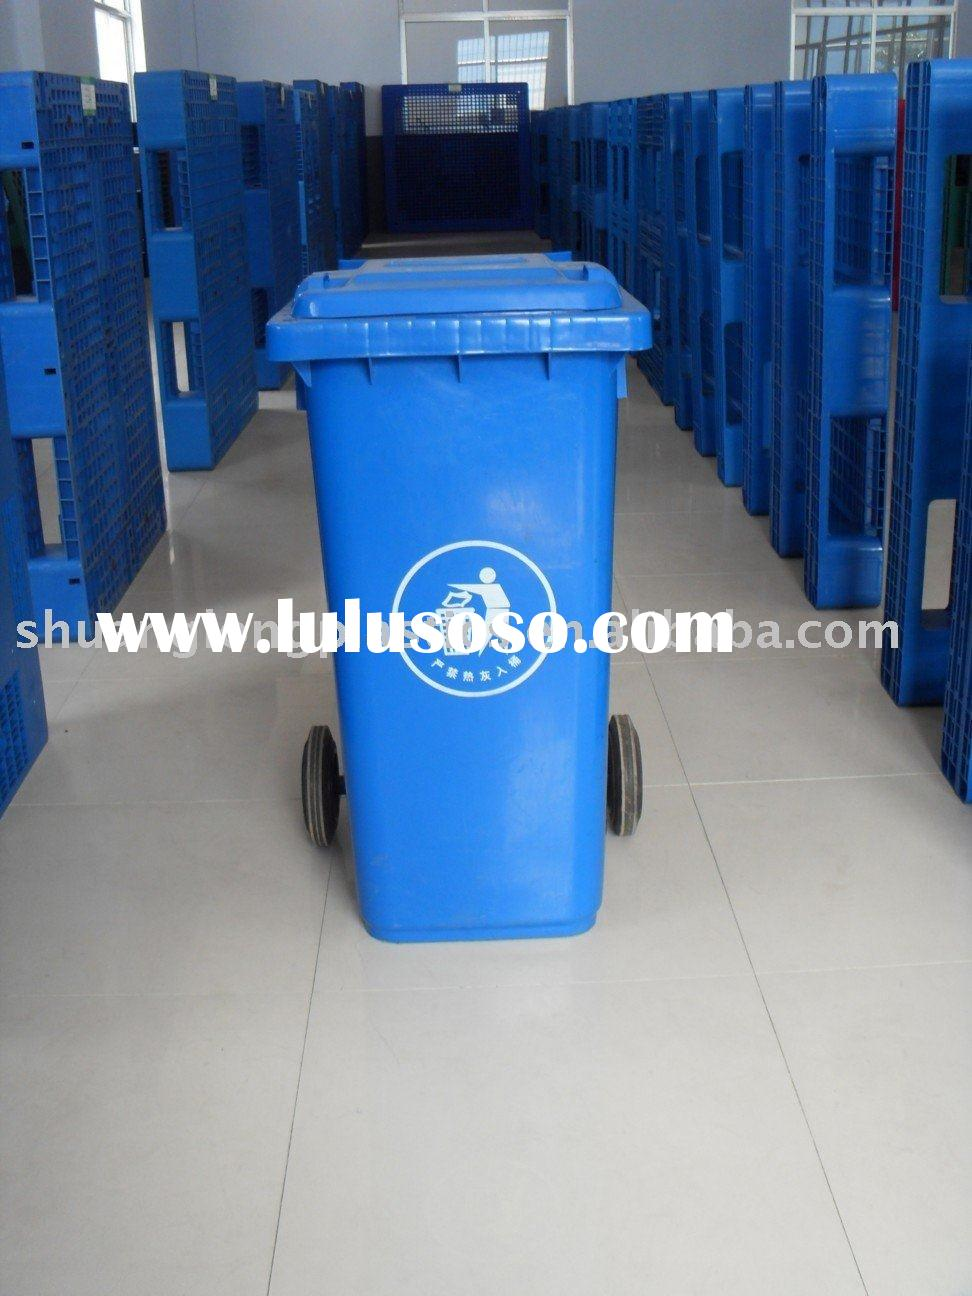 plastic garbage containers,plastic waste bins